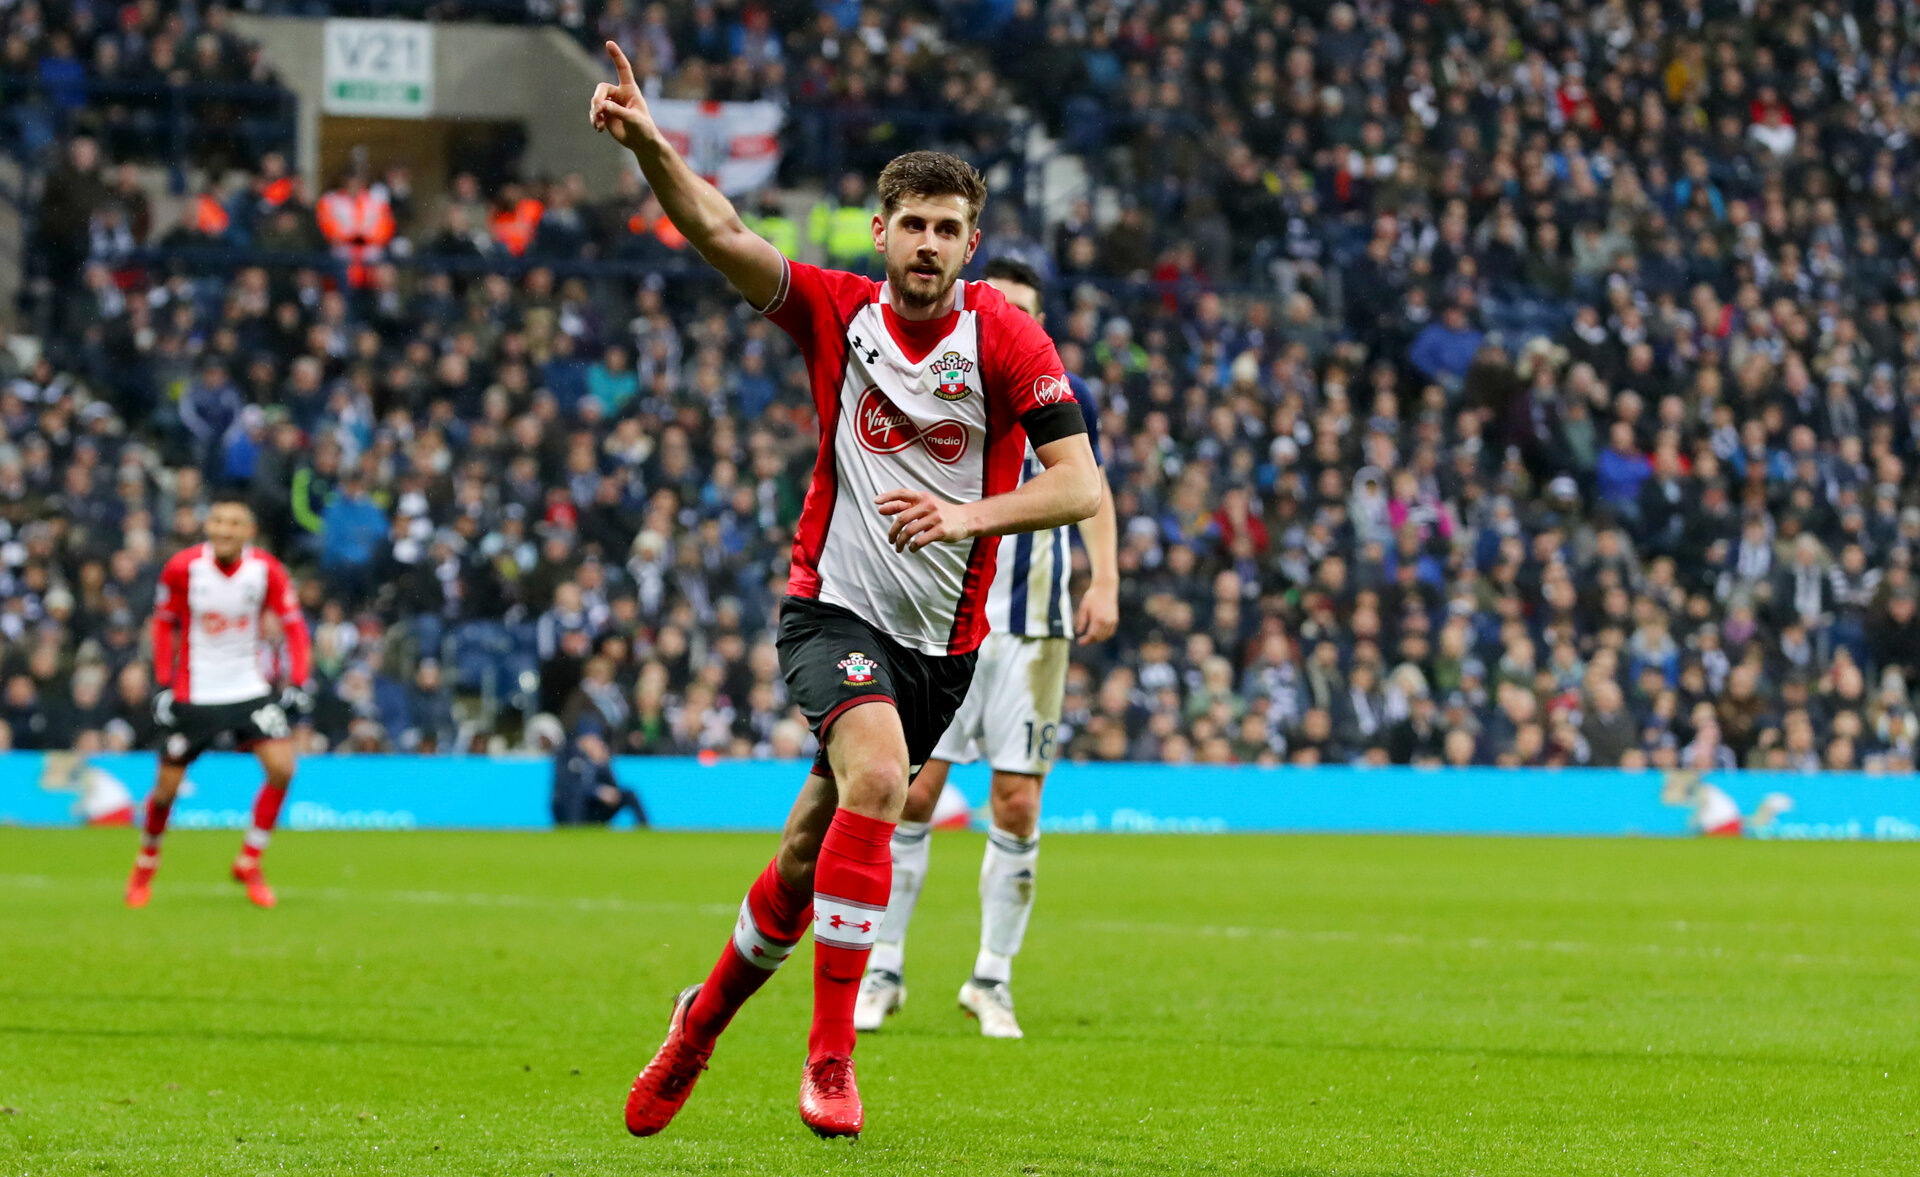 WEST BROMWICH, ENGLAND - FEBRUARY 03: Jack Stephens of Southampton FC celebrates during the Premier League match between West Bromwich Albion and Southampton at The Hawthorns on February 3, 2018 in West Bromwich, England. (Photo by Matt Watson/Getty Images)